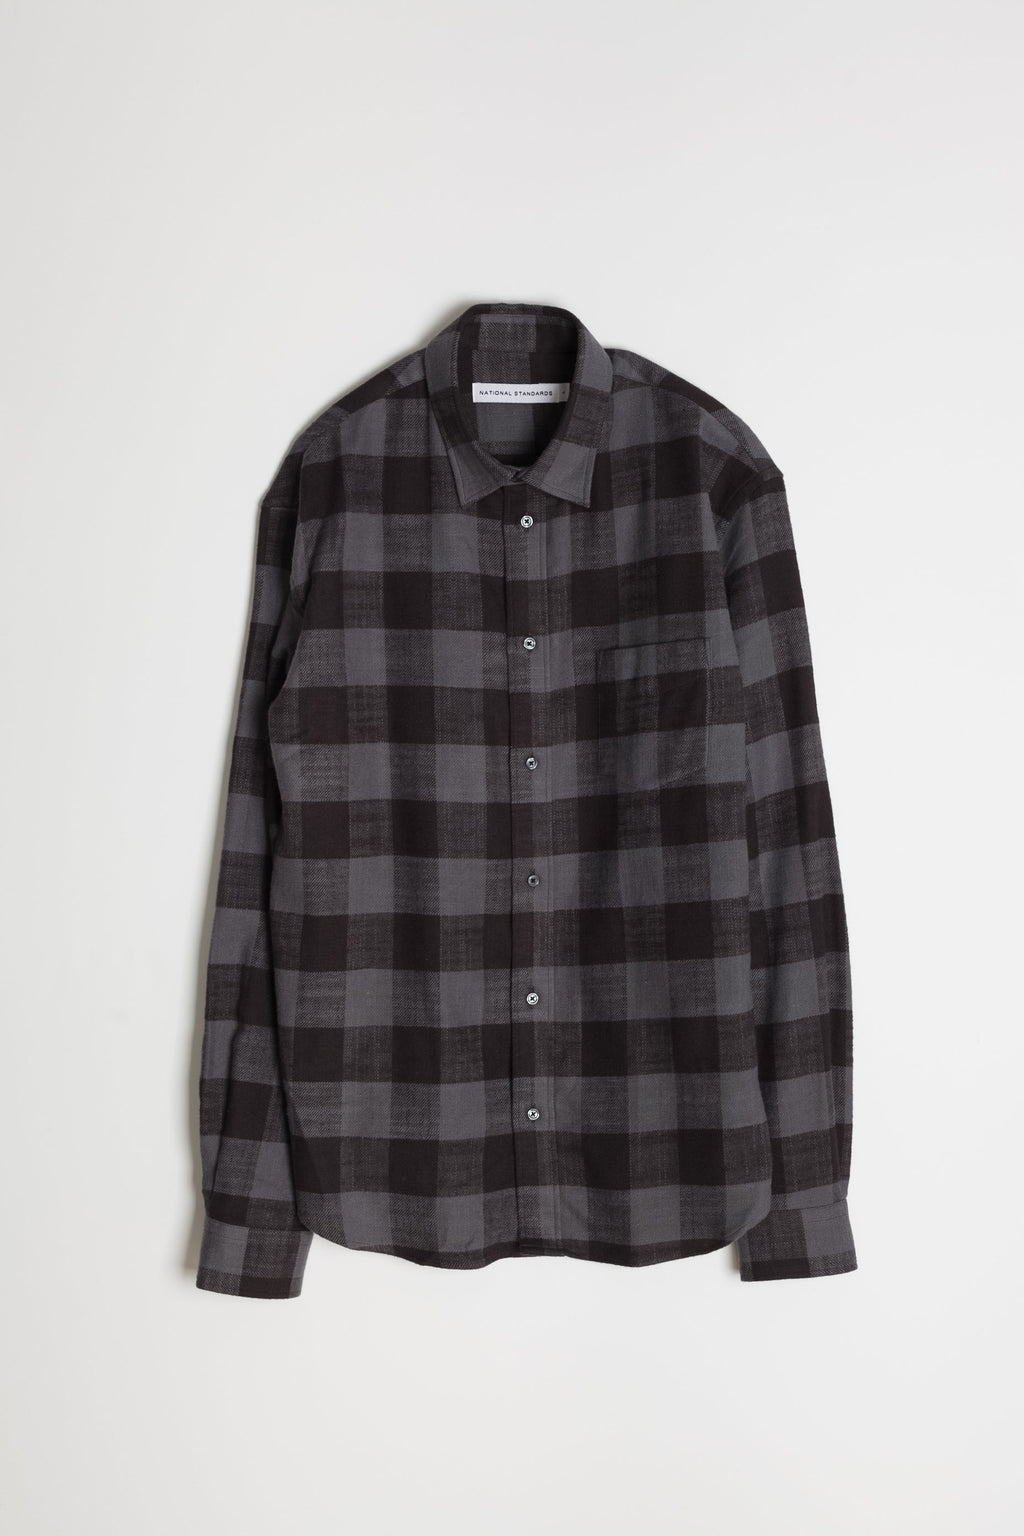 Japanese Buffalo Plaid in Grey and Black 06